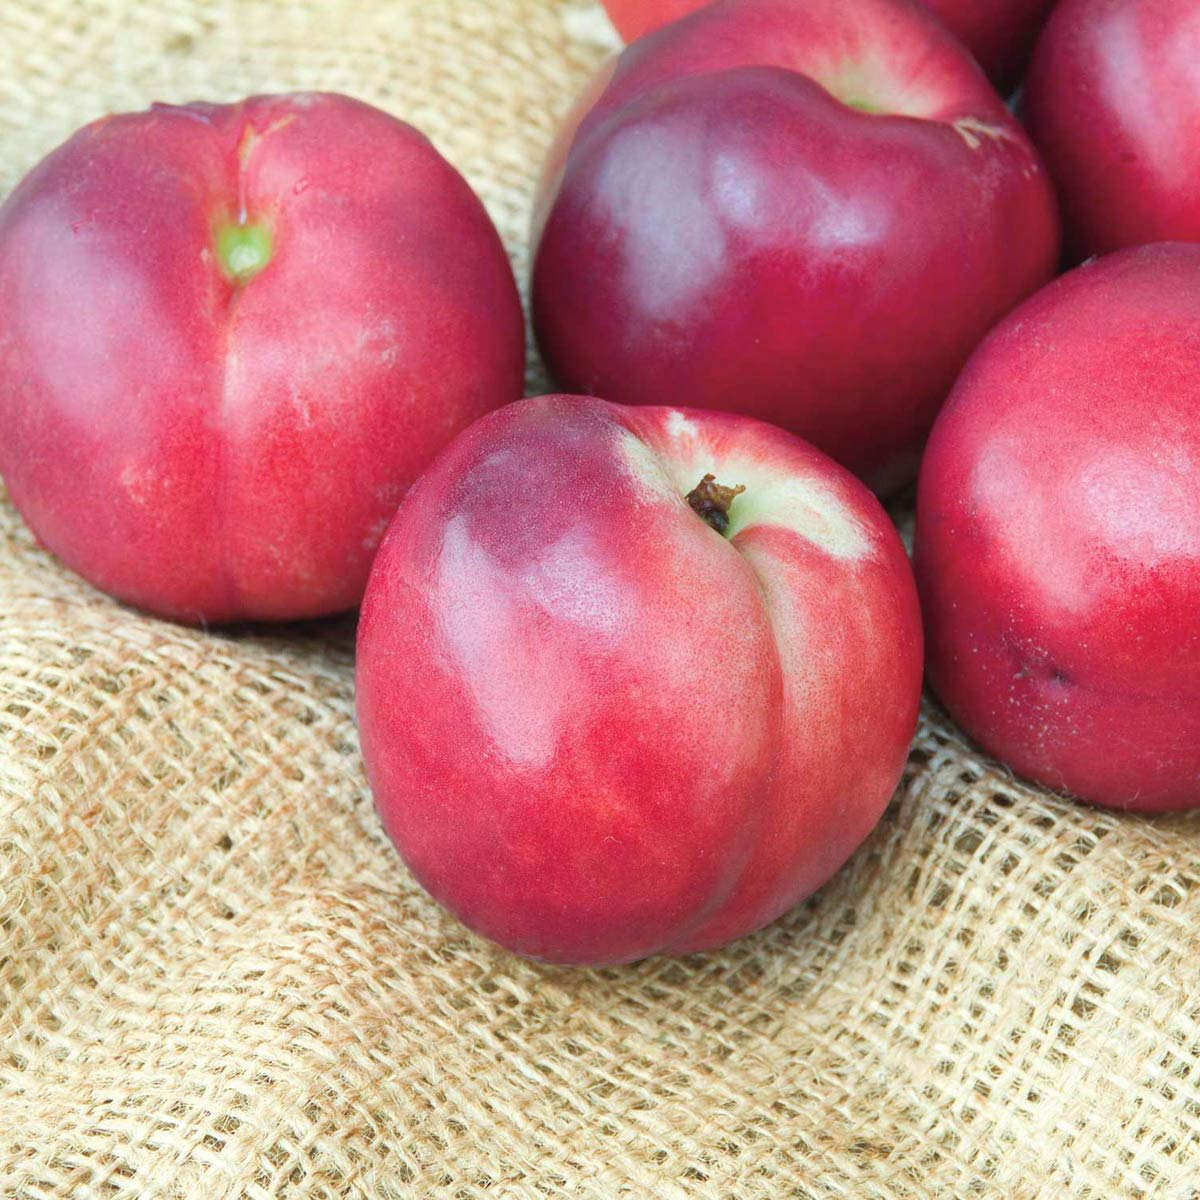 Nectarine Yumm Yumm REACHABLES Bare Root Fruit Tree - Enjoy Nectarines with Needing a Ladder to Maintain! Includes 1 Tree per Order. Due to regulations Can't Ship to AL AR CA CO ID LA MS OR WA by Gurneys (Image #1)